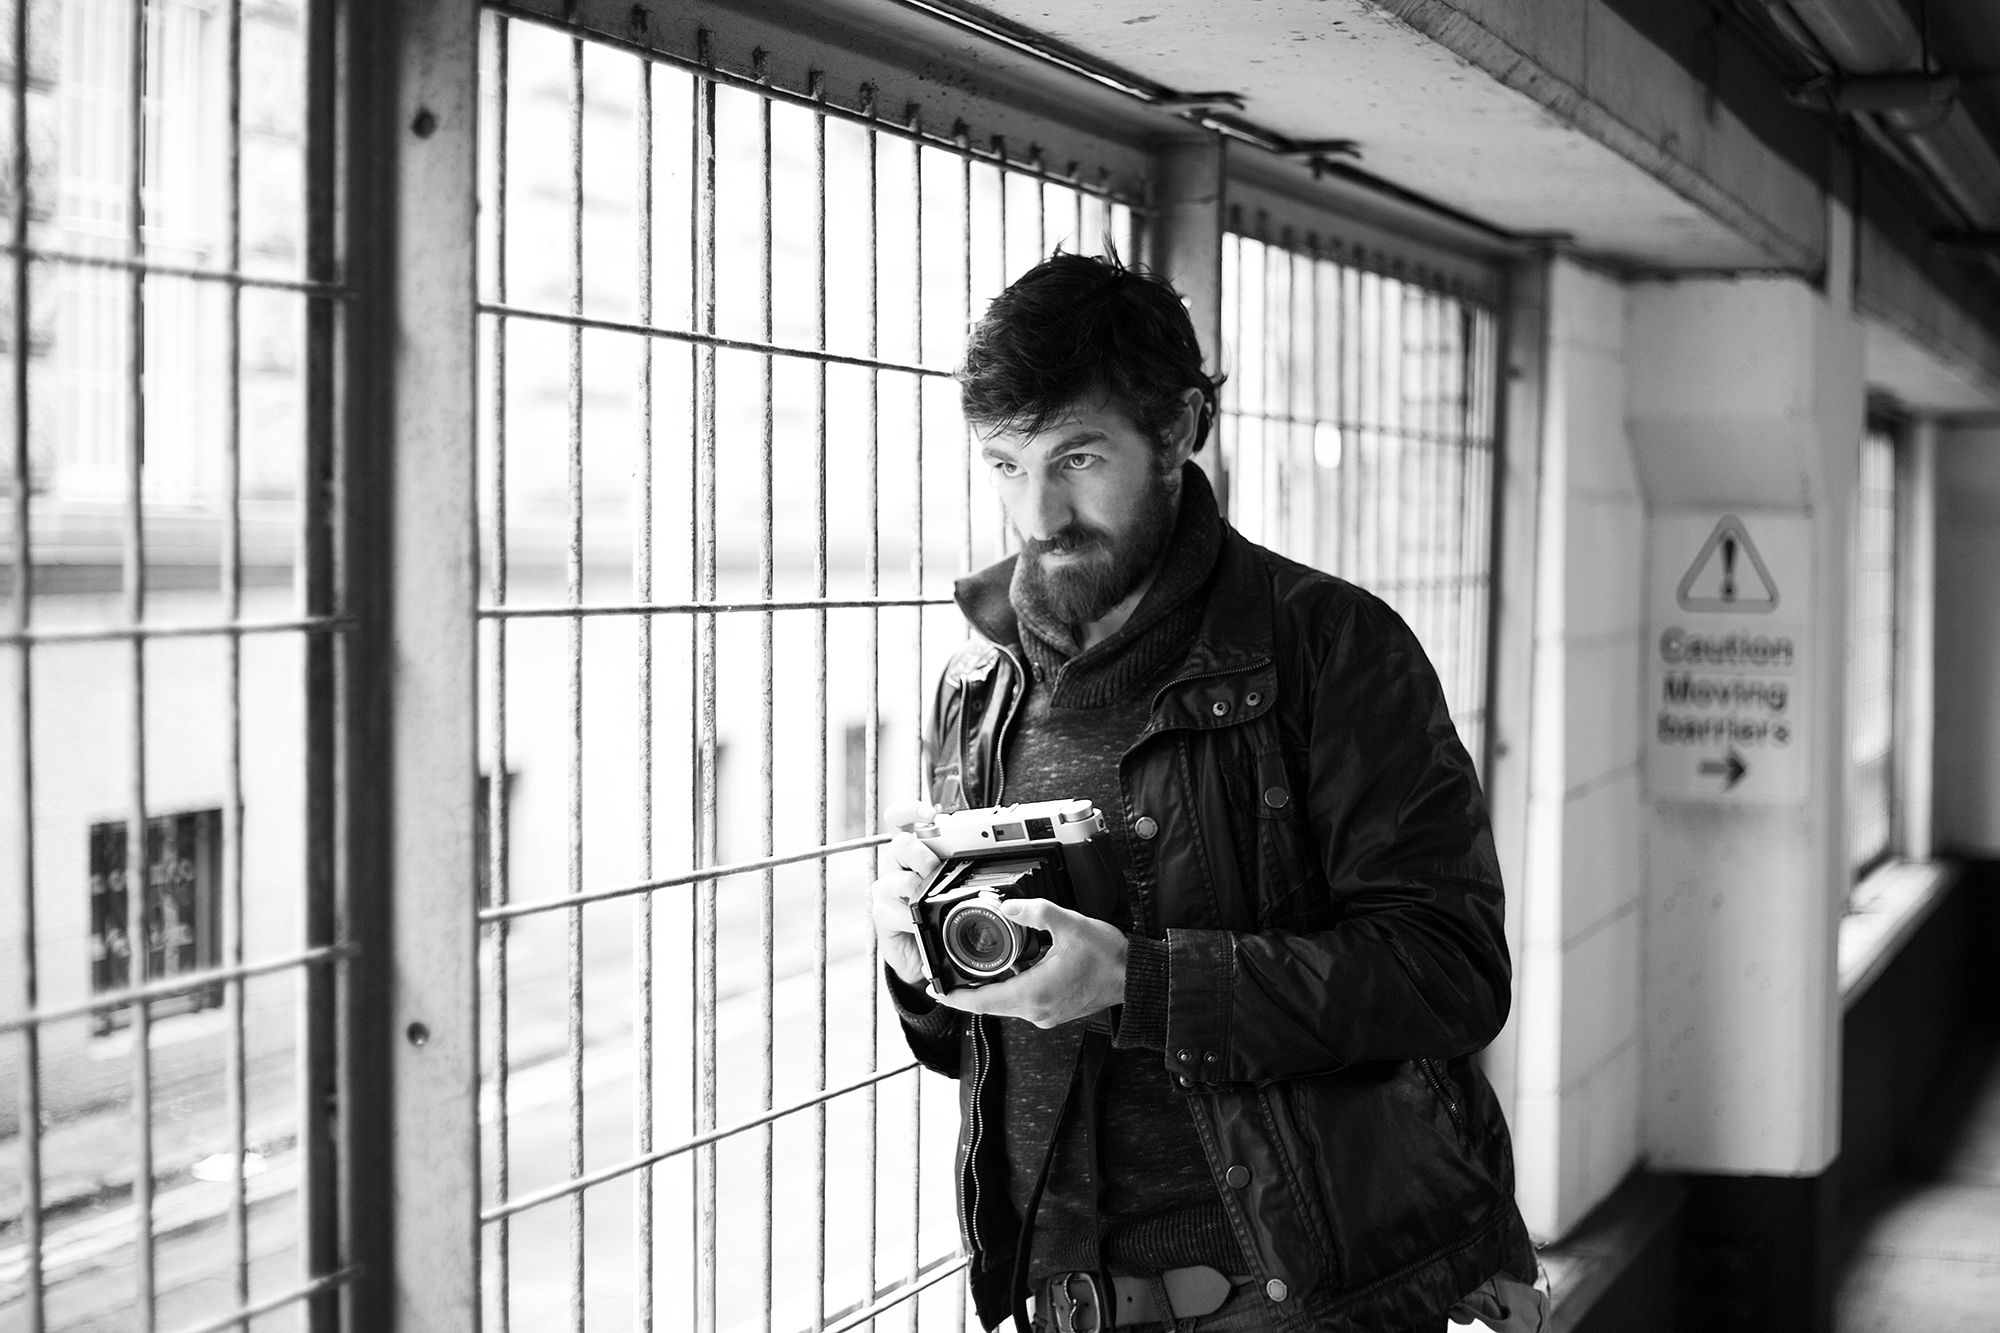 I met up with my college buddy Eoin Macken last week for a coffee and a catch up;  as two photography buffs we ended up taking some quick snaps while wandering through the streets of Dublin.  Macken has just released a book, 'Kingdom of Scars' and is currently shooting season 2 of 'The Night Shift'..